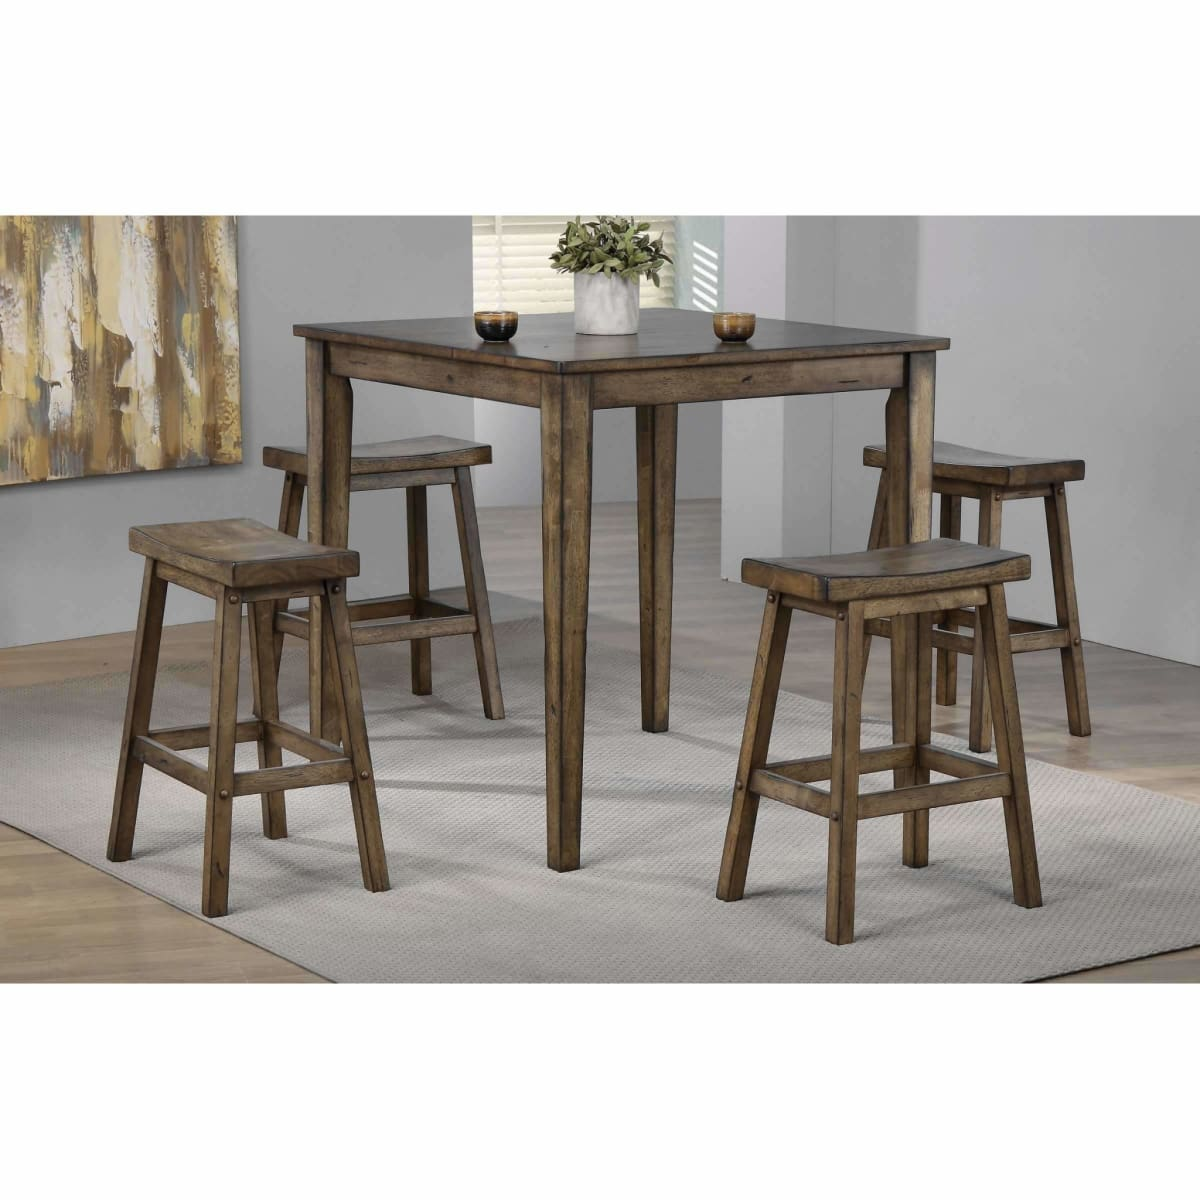 Newport 36 Square Tall Table - DININGCOUNTERHEIGHT